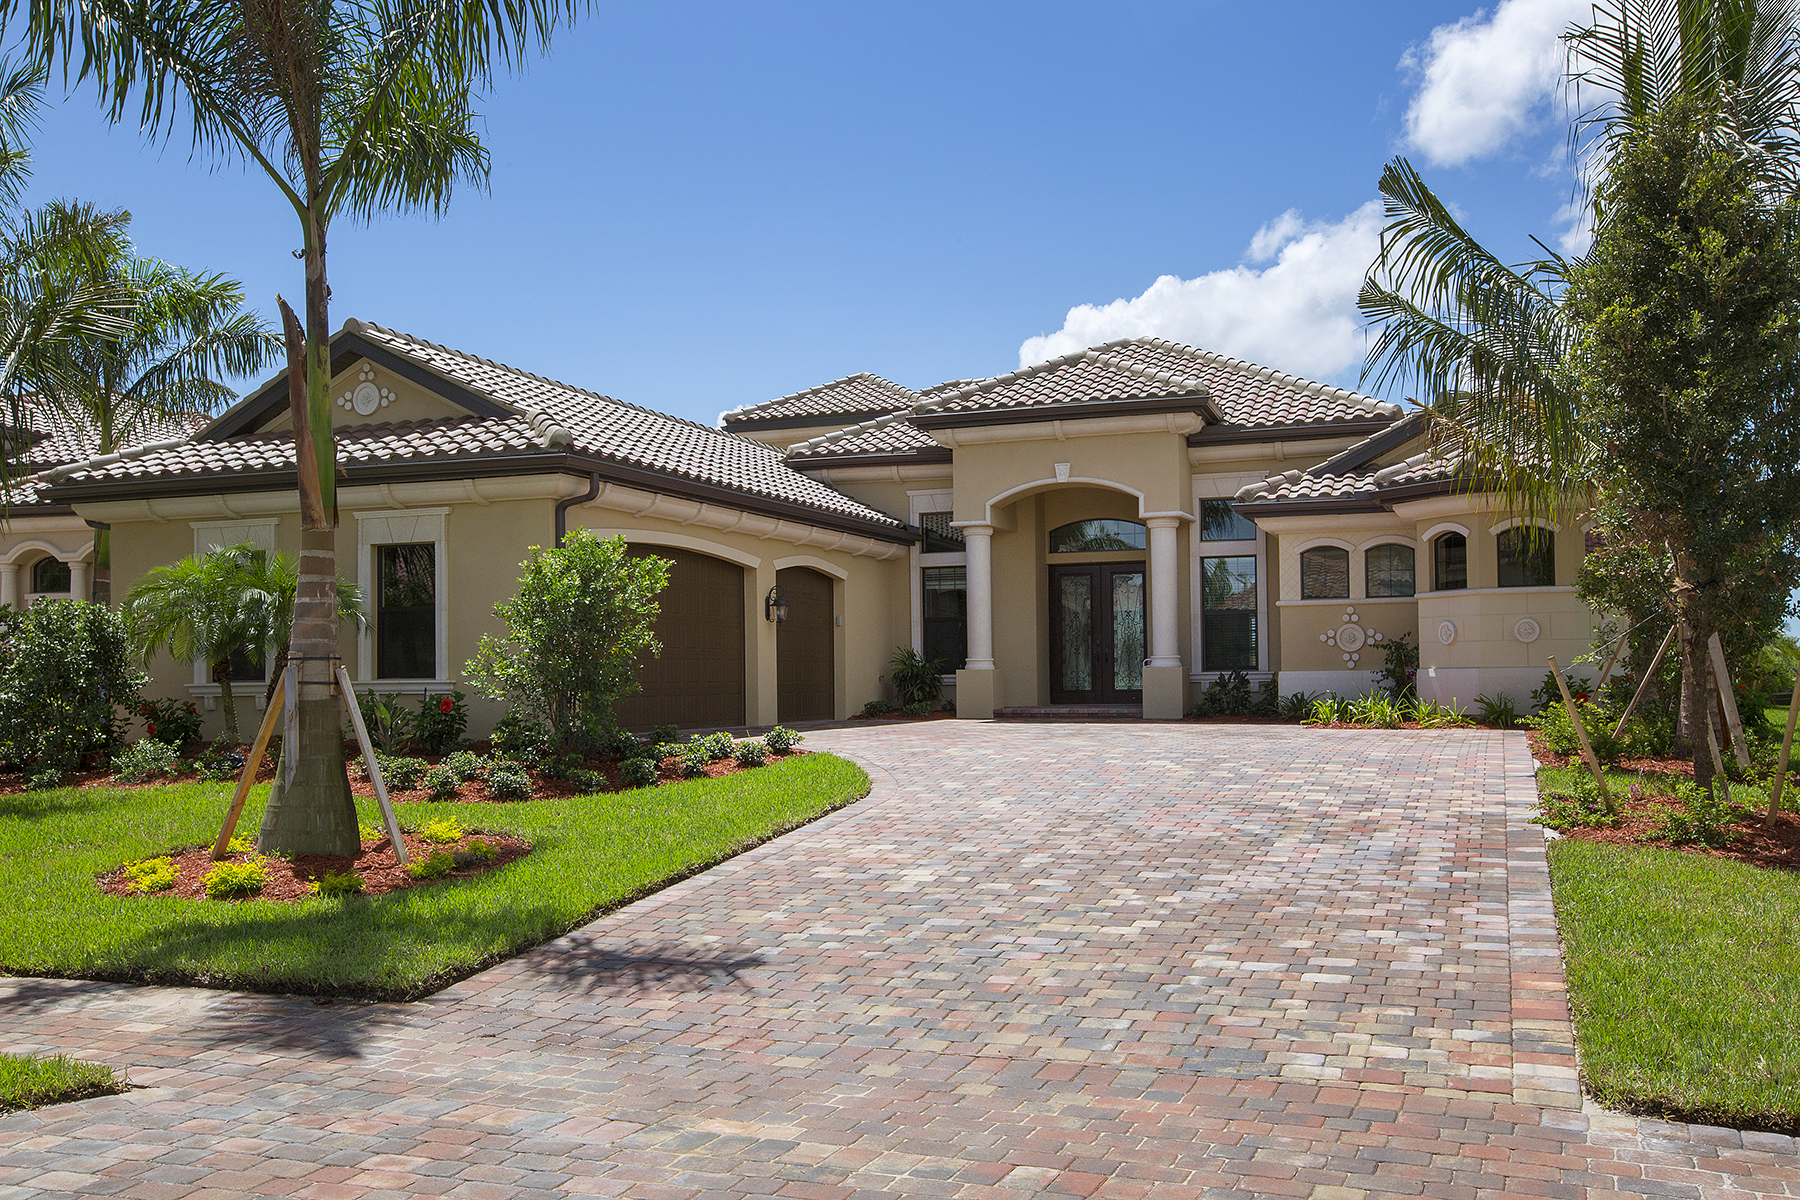 Single Family Home for Sale at FIDDLER'S CREEK - RUNAWAY BAY 3278 Runaway Ln Naples, Florida, 34114 United States